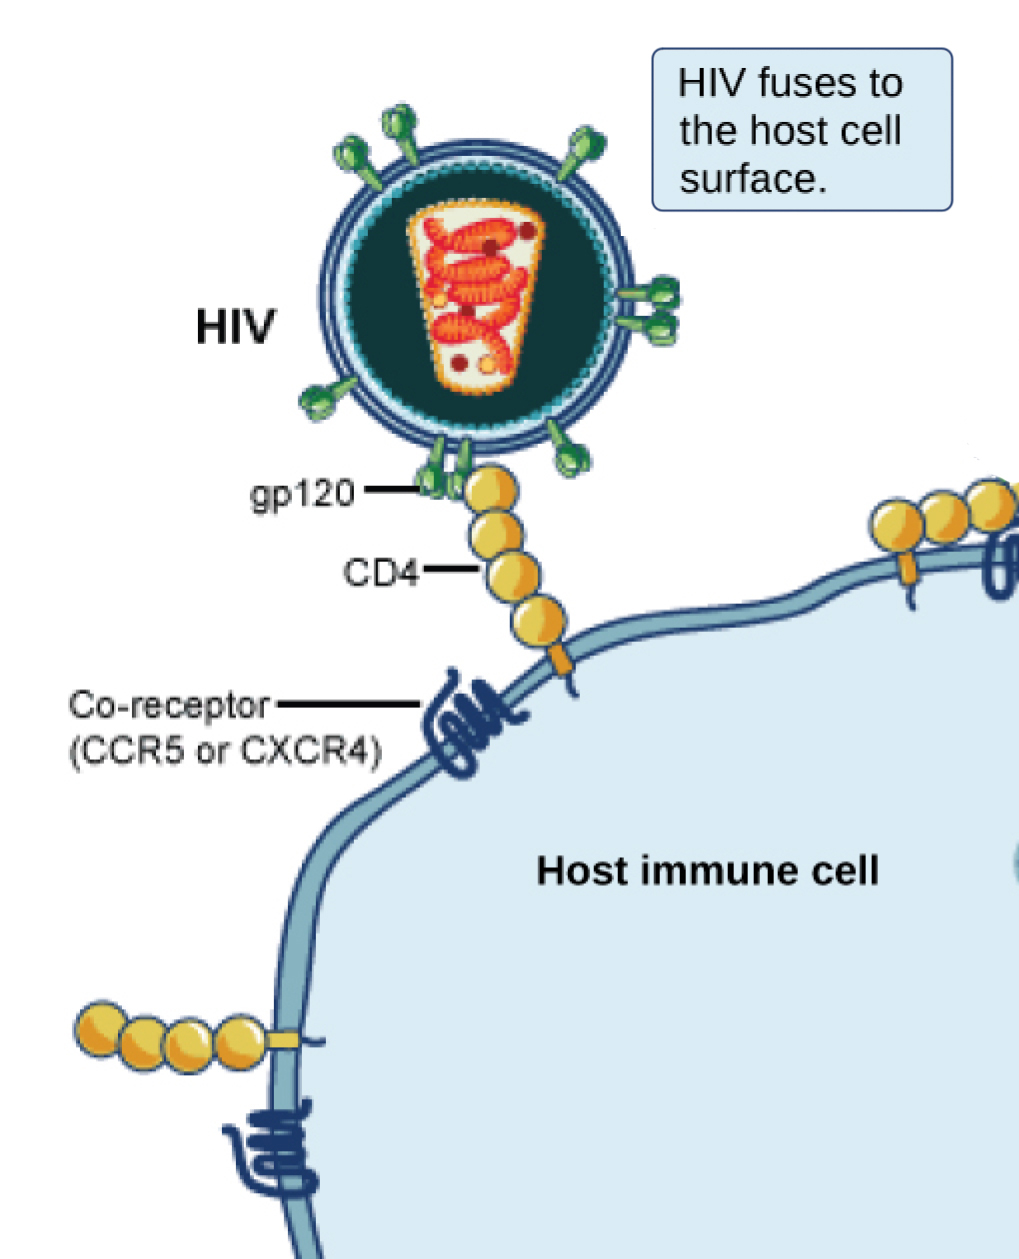 hight resolution of in the illustration a viral receptor on the surface of an h i v virus is attaches to